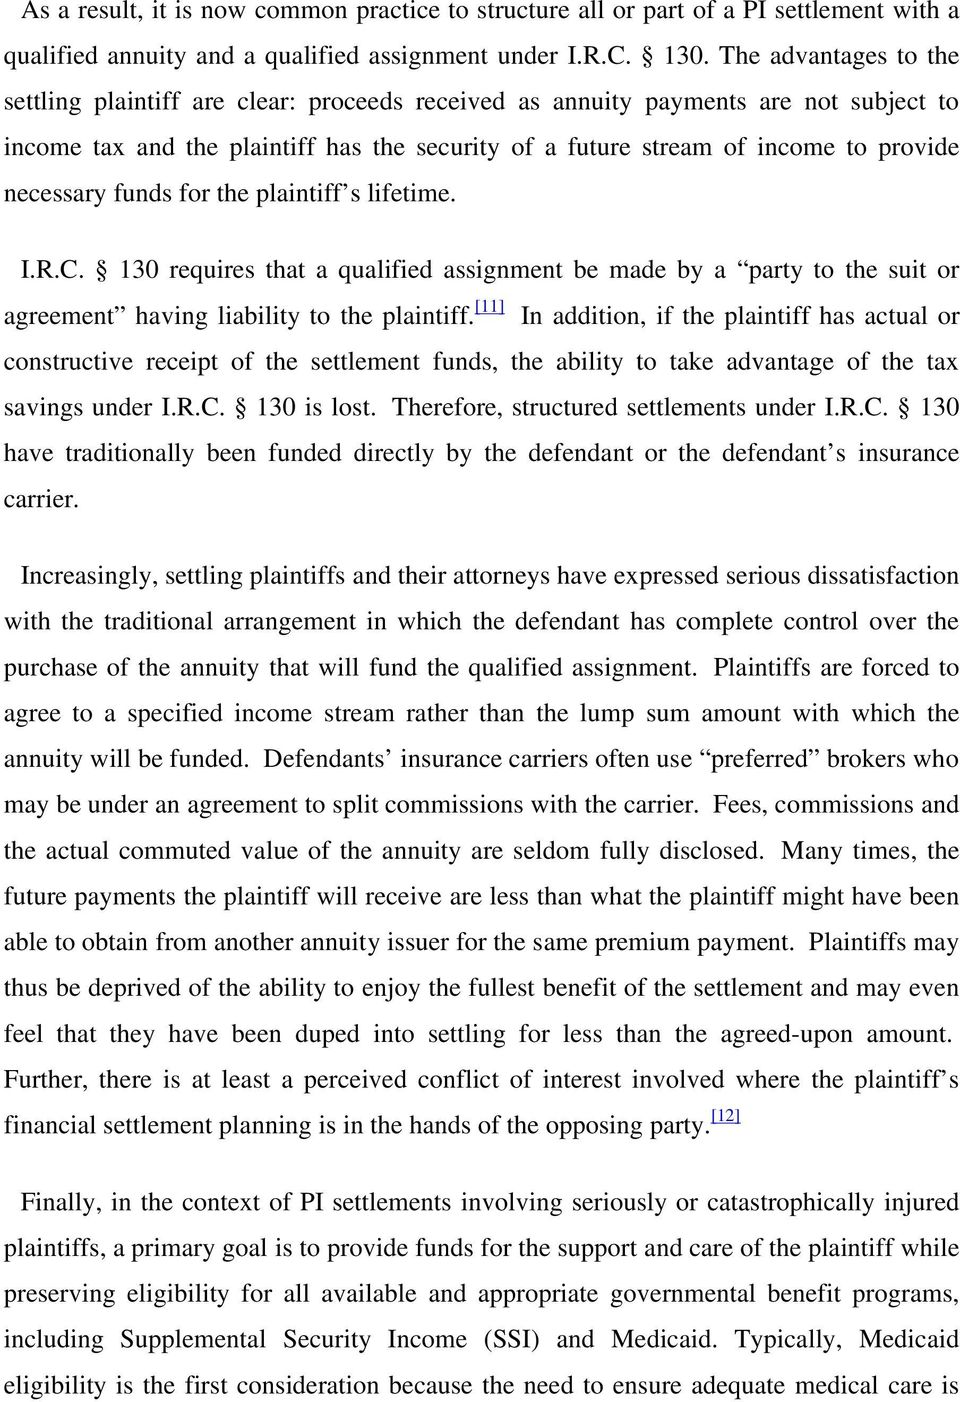 necessary funds for the plaintiff s lifetime. I.R.C. 130 requires that a qualified assignment be made by a party to the suit or agreement having liability to the plaintiff.